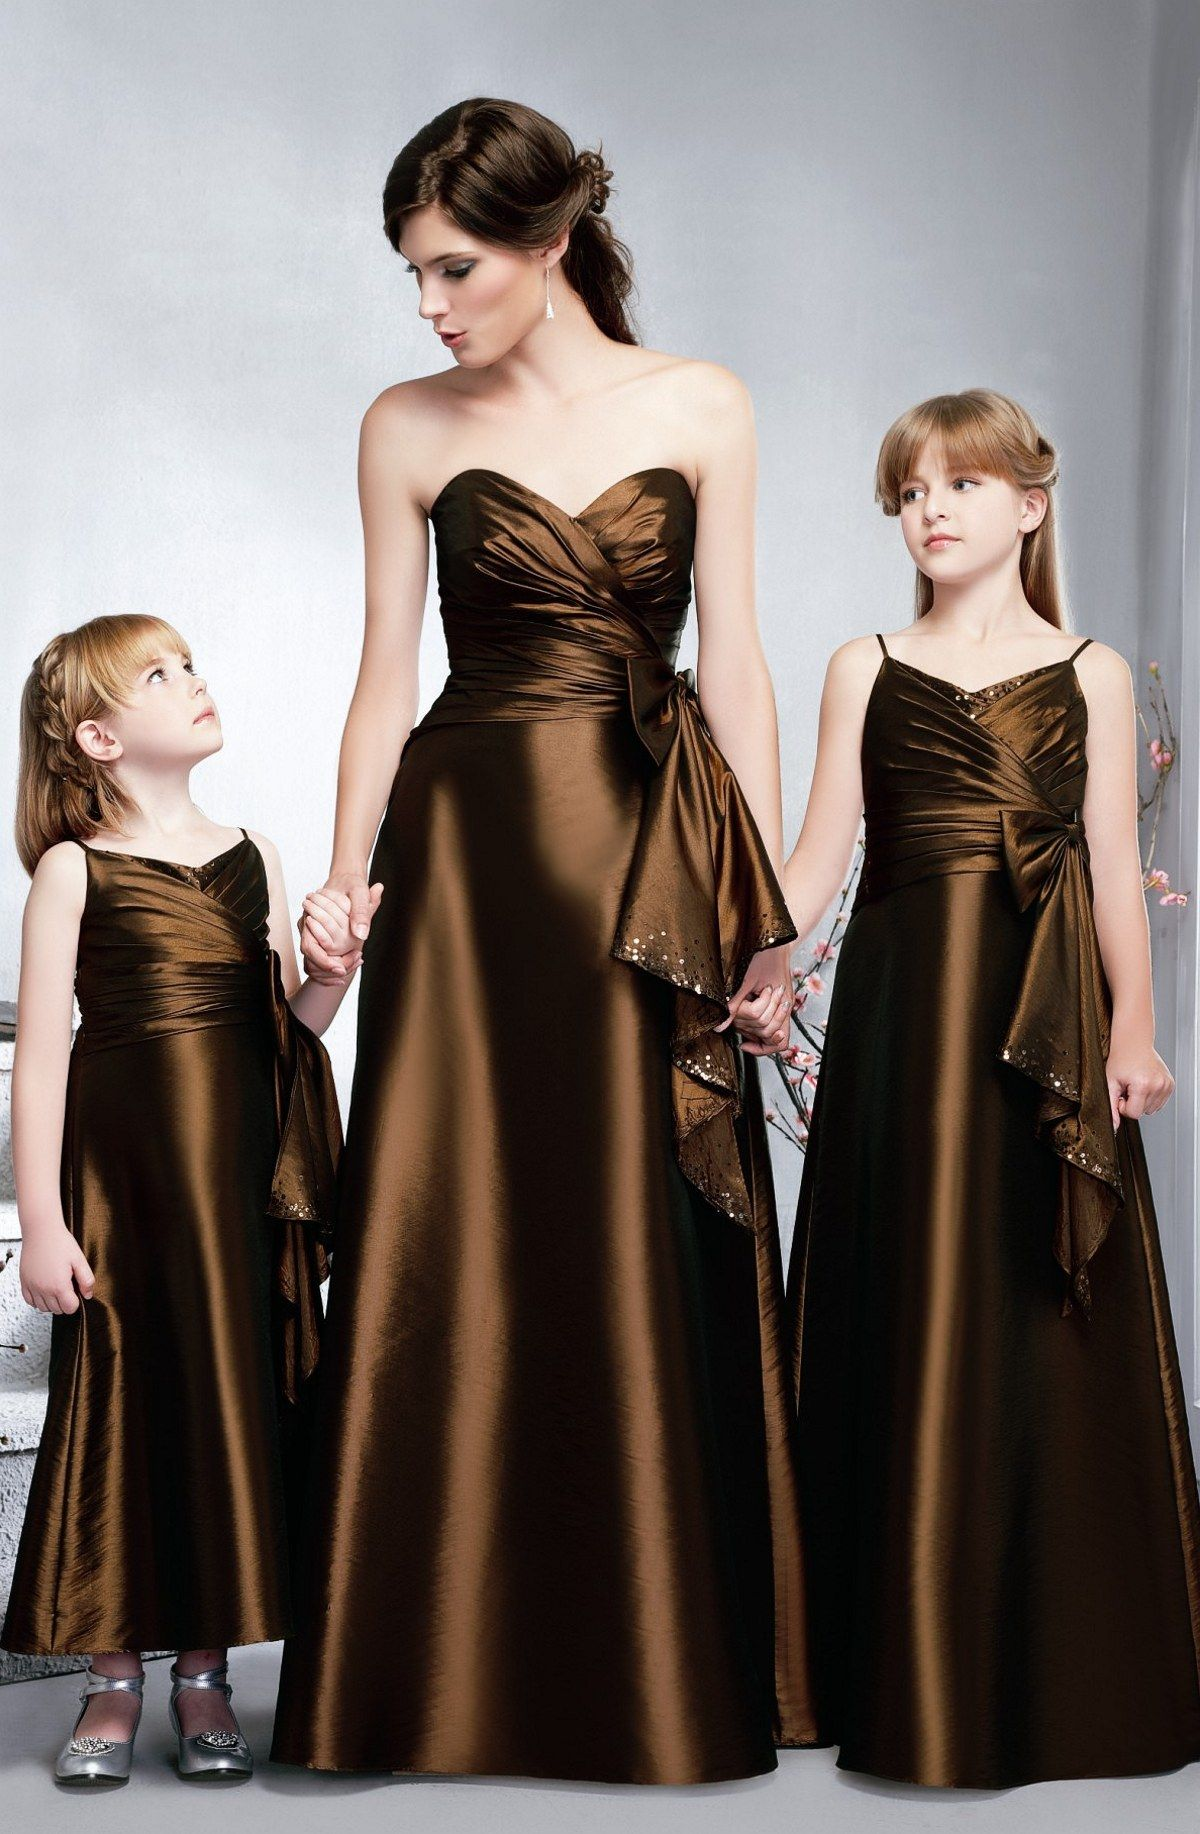 Pictures of bronze bridesmaids dresses style vrf8985 vrb7963 pictures of bronze bridesmaids dresses style vrf8985 vrb7963 vrf8984 bridesmaid collection ombrellifo Gallery